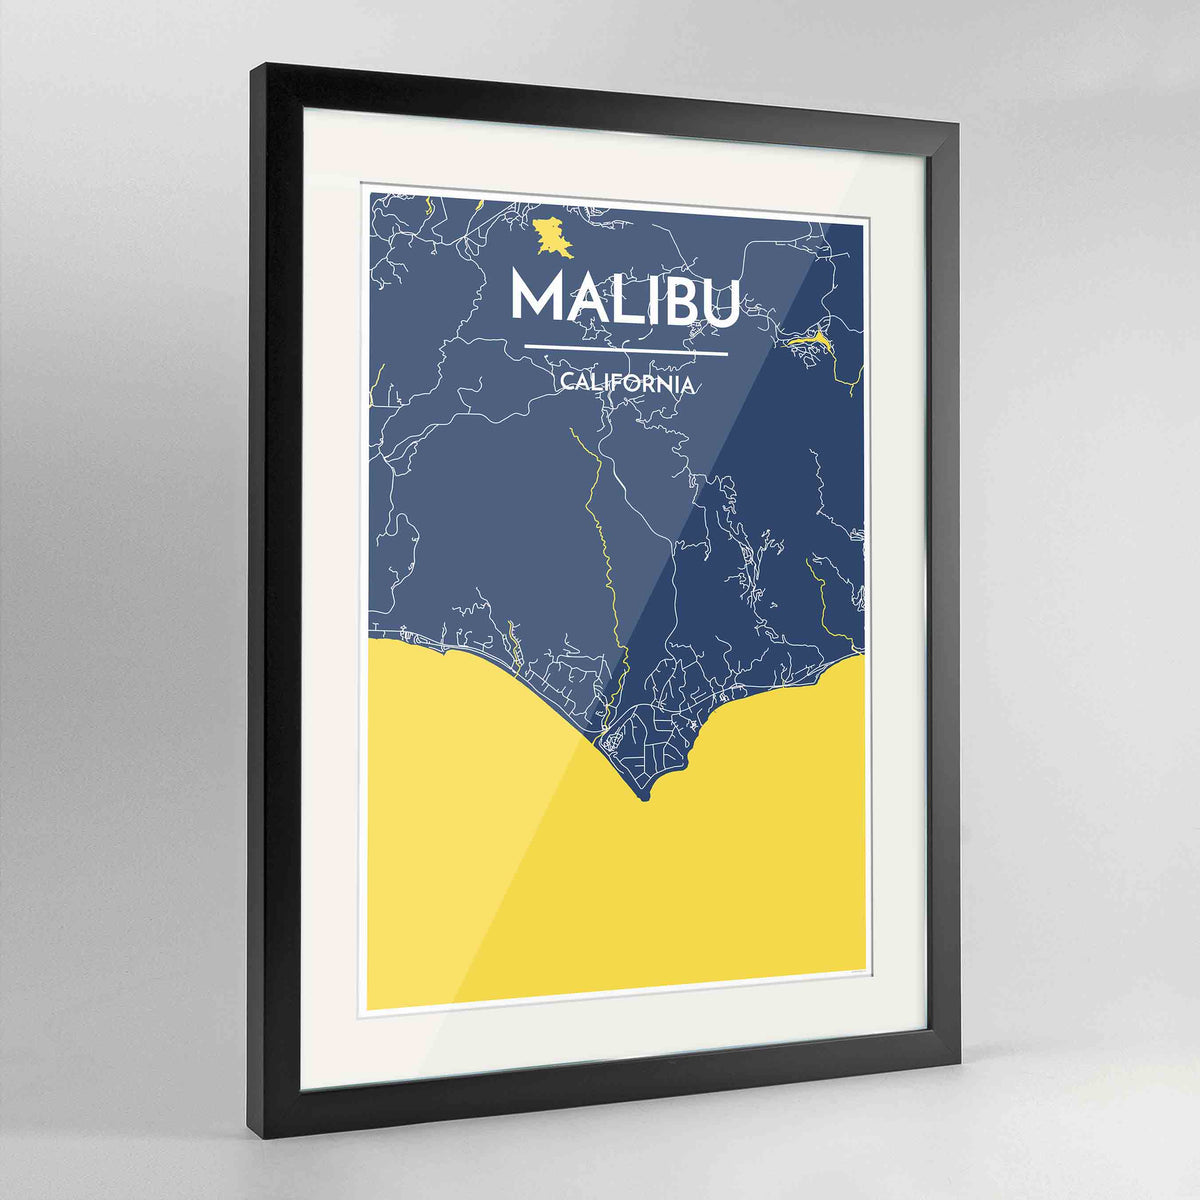 "Framed Malibu Map Art Print 24x36"" Contemporary Black frame Point Two Design Group"